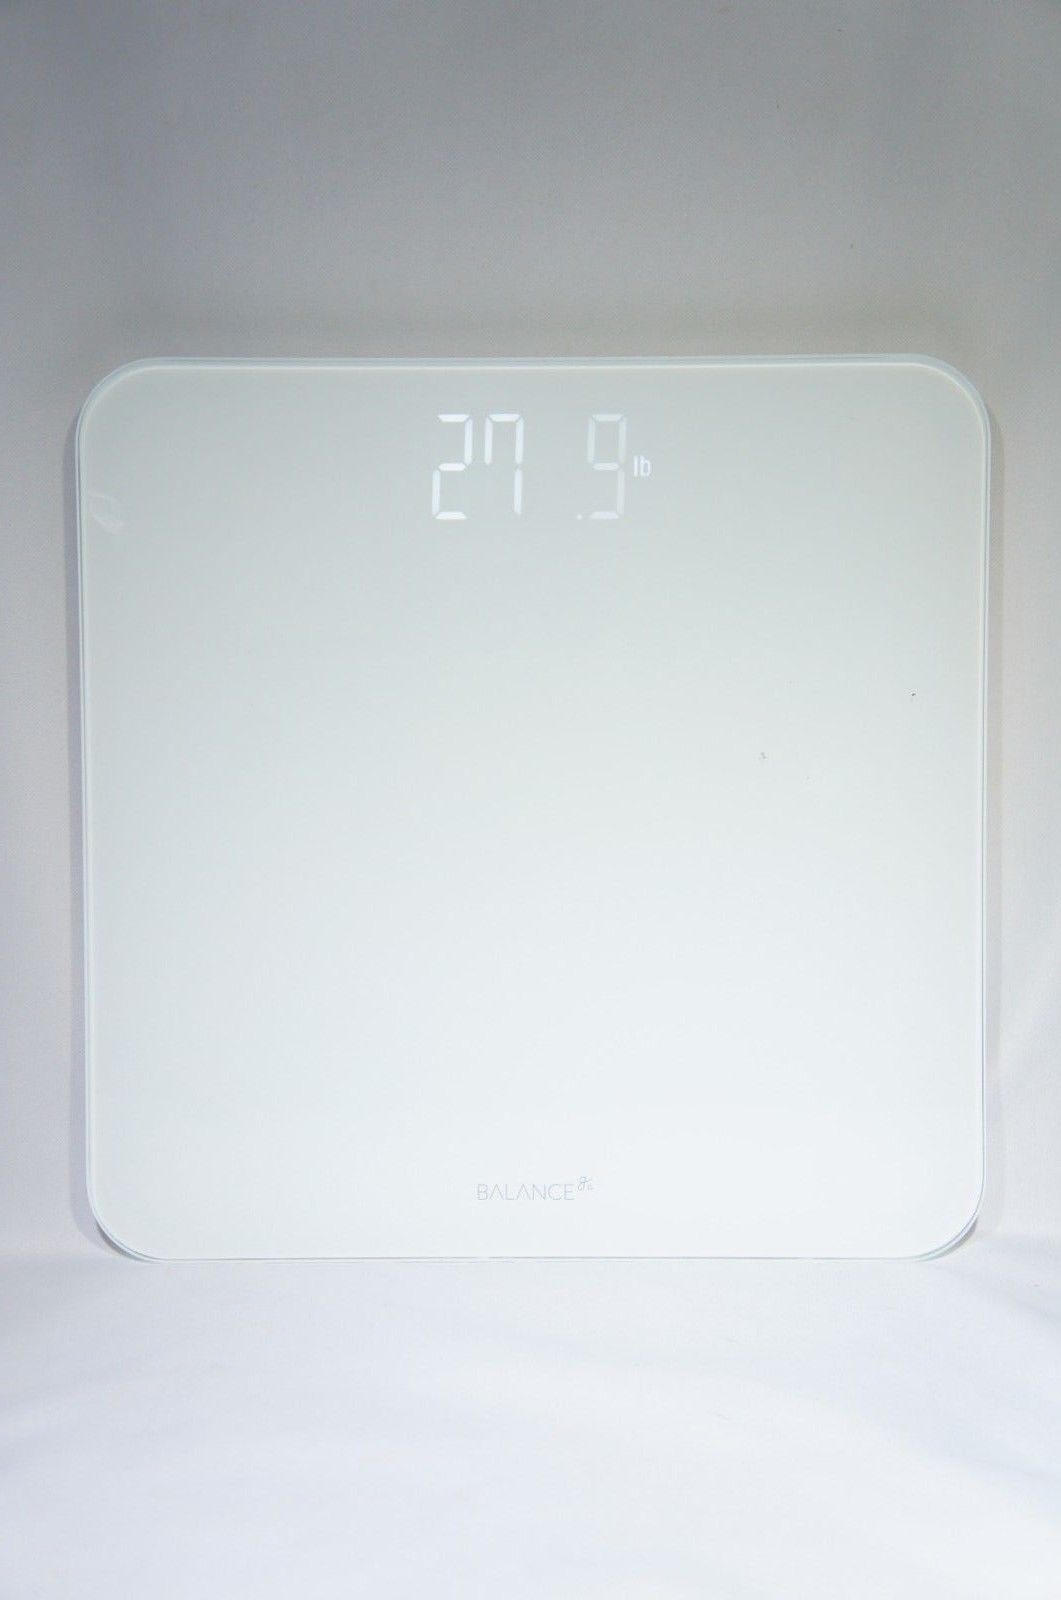 Digital Body Weight Bathroom Scale from GreaterGoods (White) Body Scale with Digital Weight, Accurate Bathroom Scales (Like New)